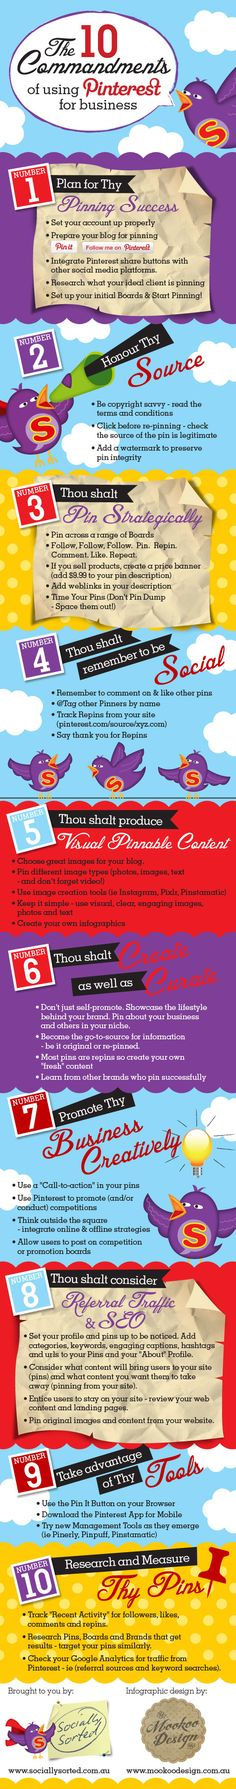 Ten Commandments of Pinterest Infographic. This infographic is full of helpful hints to best use Pinterest for your business or blog. ------ HugSpeak can assist you in creating eye-catching and interesting ways to communication information. To learn more, visit www.HugSpeak.com